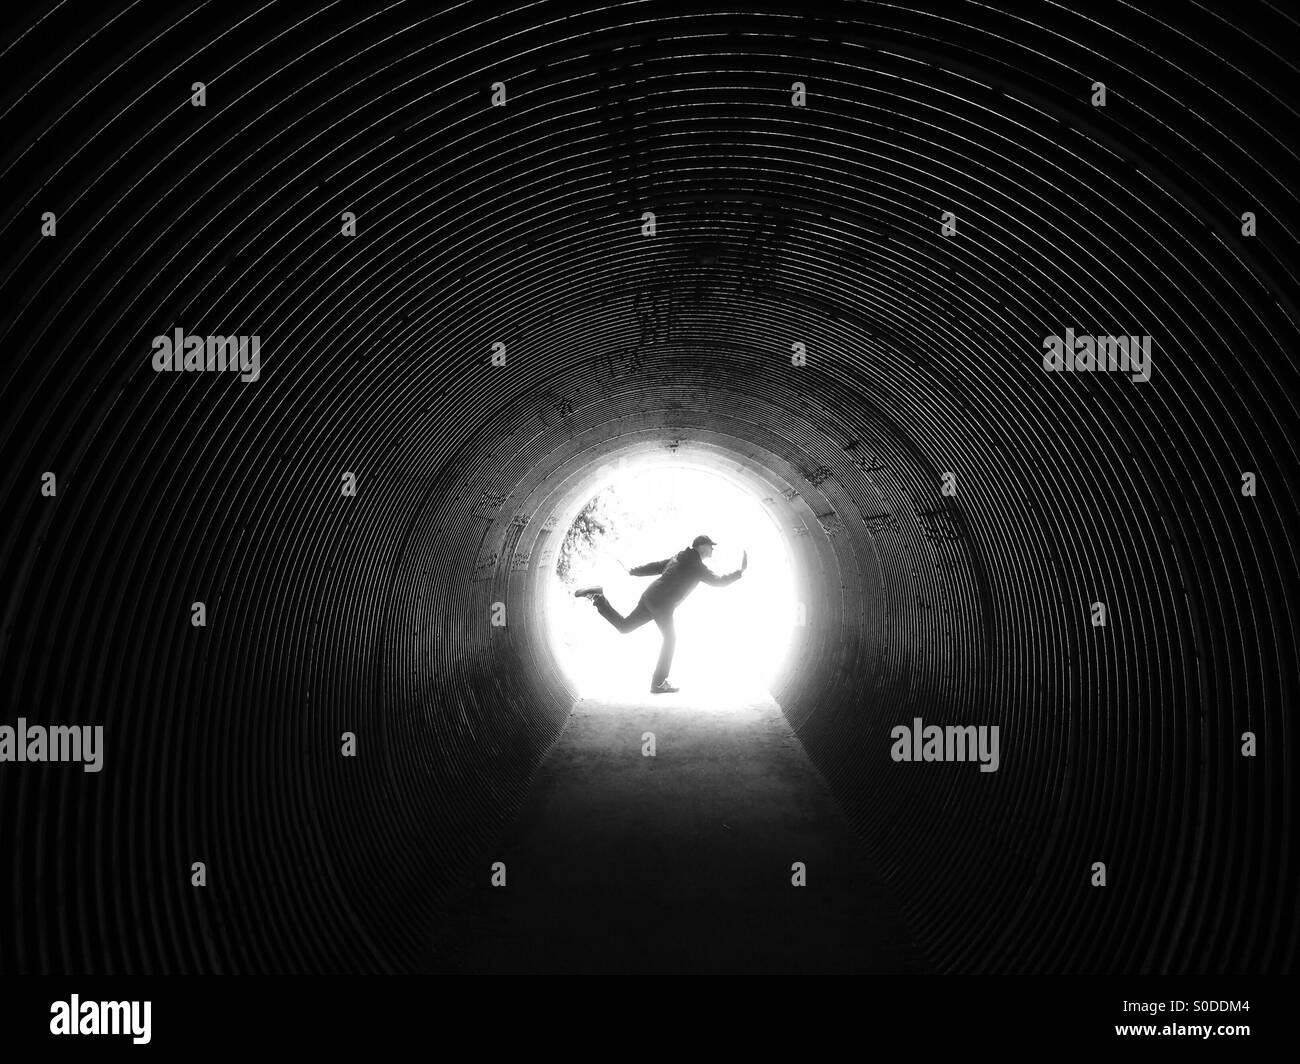 Man posing in tunnel Photo Stock